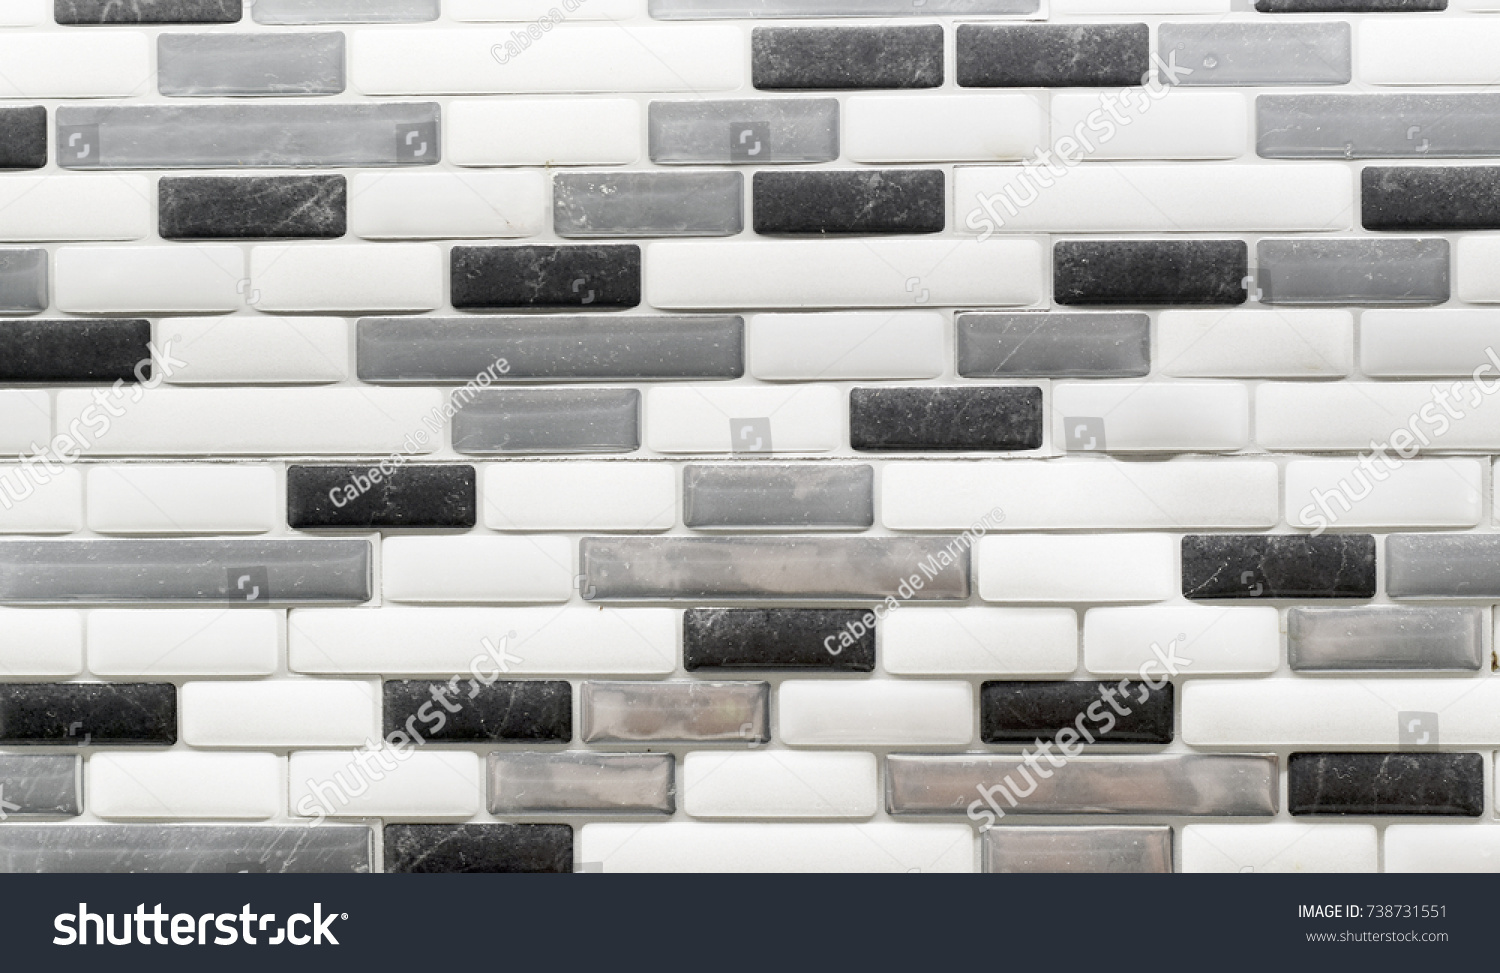 Black White Gray Glass Tile Backsplash Stock Photo (Royalty Free ...